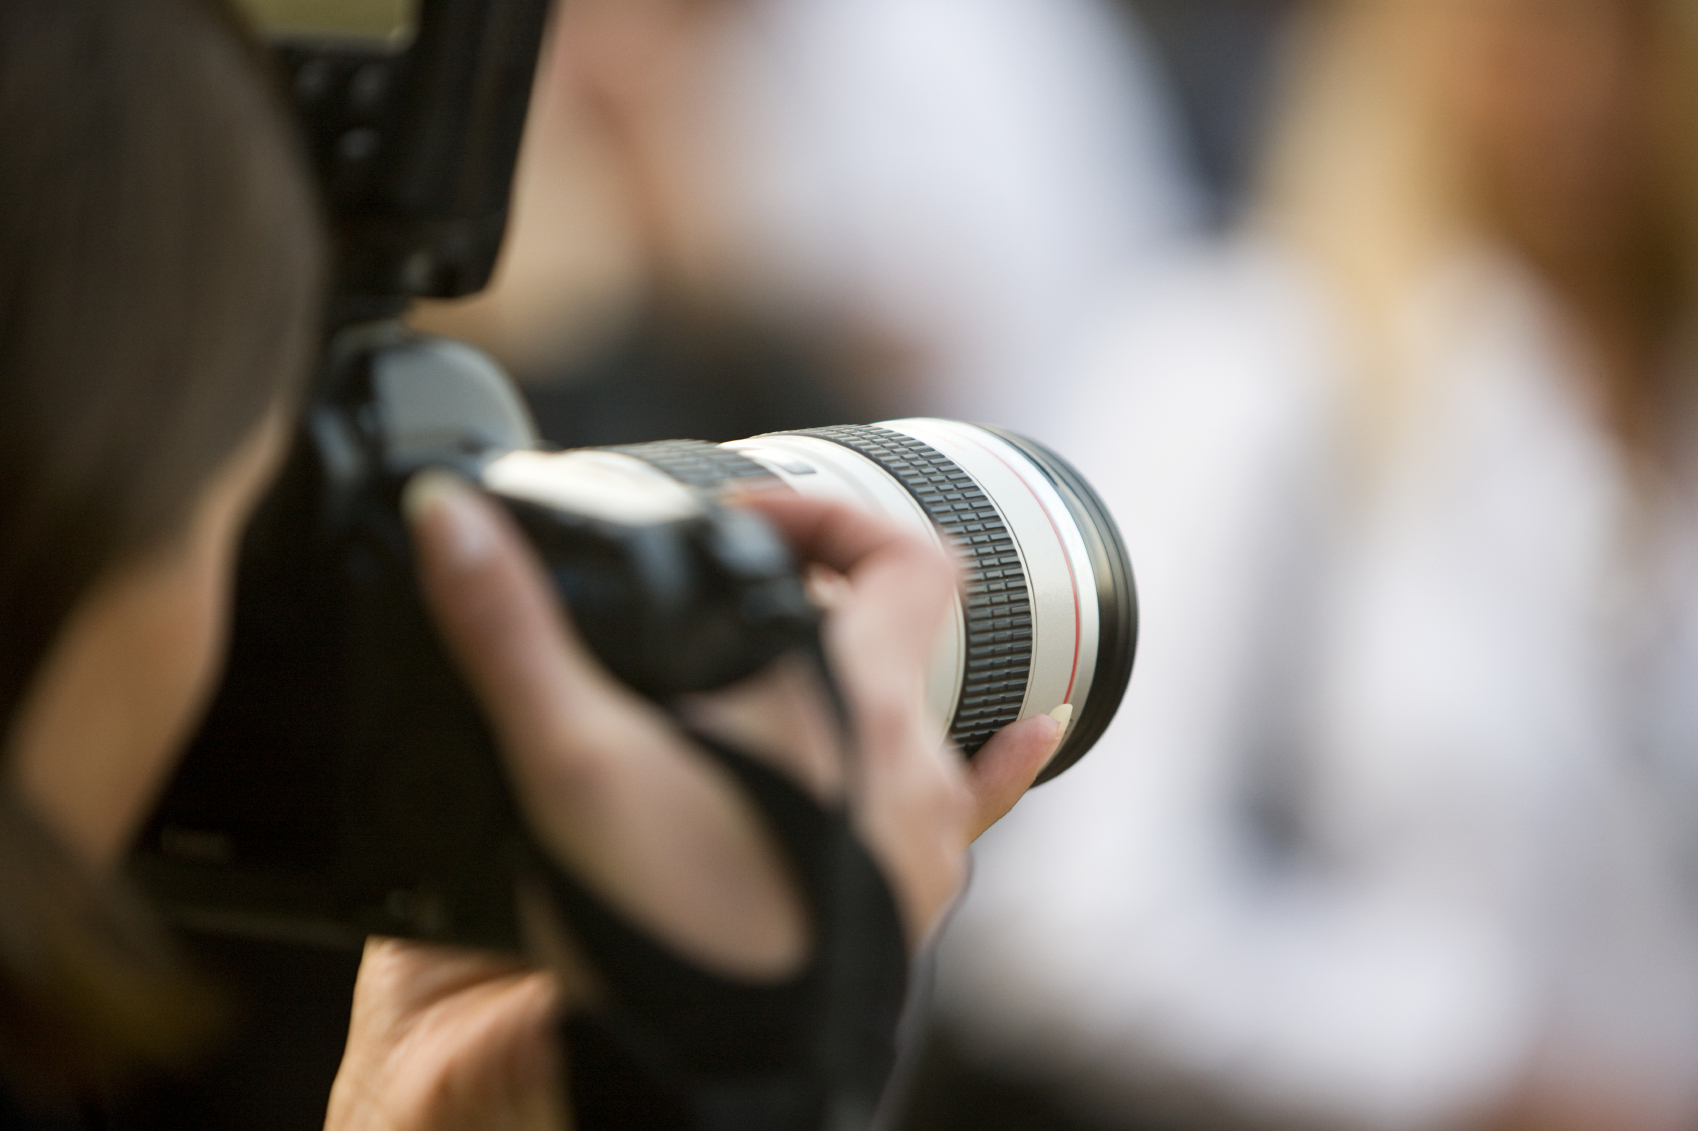 photography | The Fashion Industry Law Blog